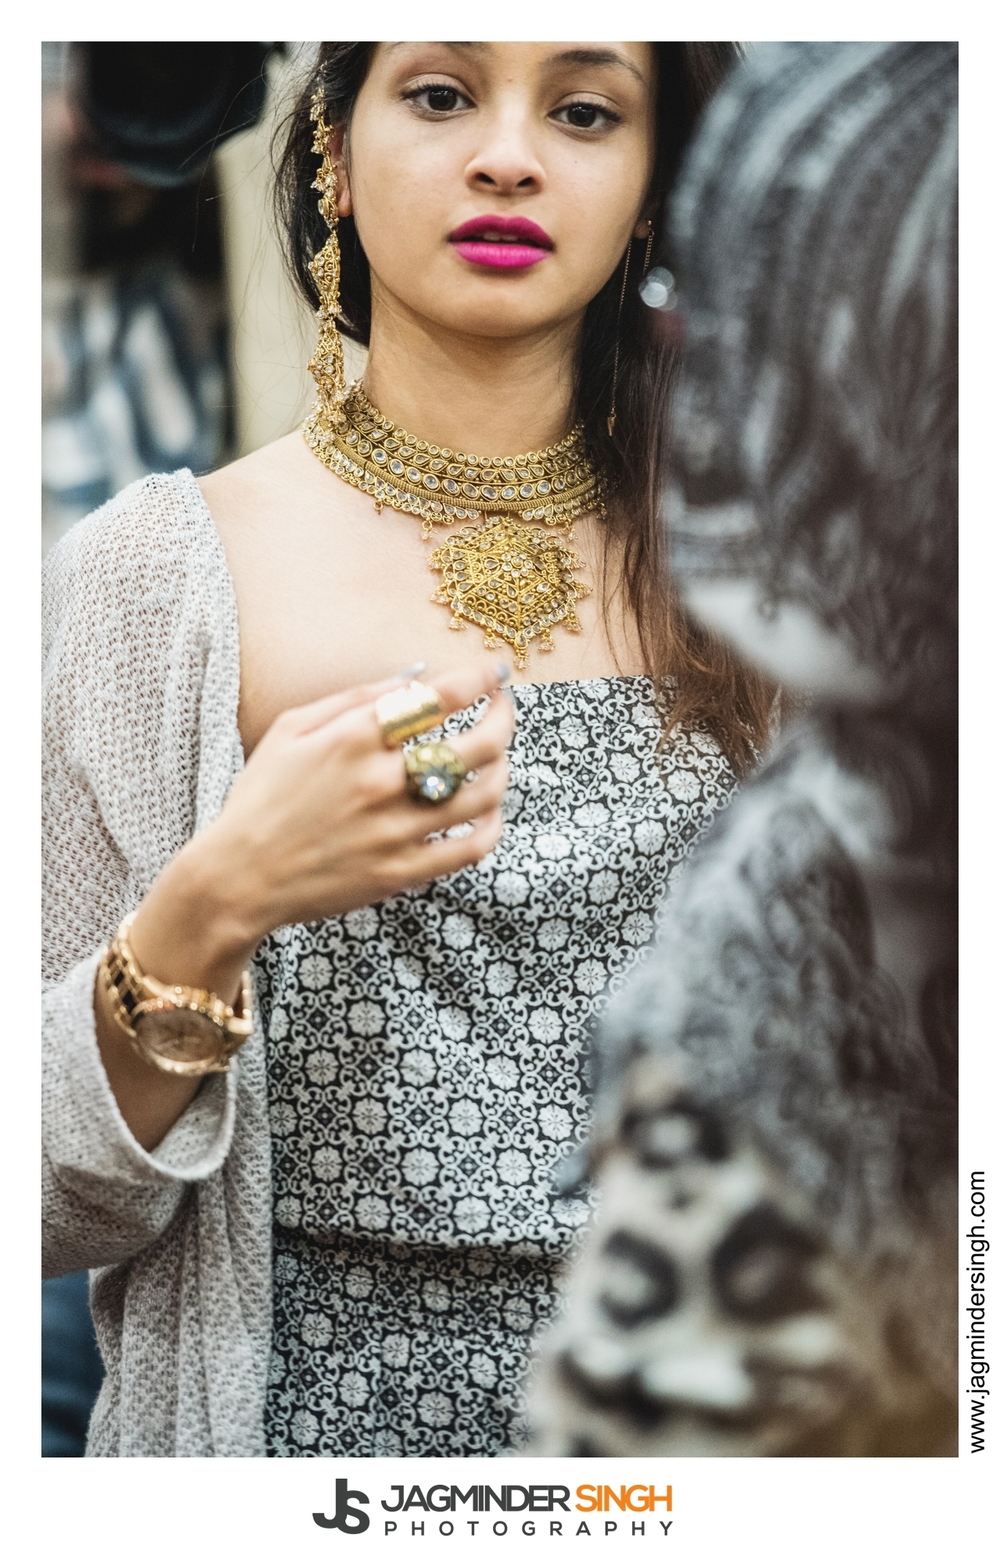 Jagminder-Singh-Photography-Ethnic-Couture0163.JPG